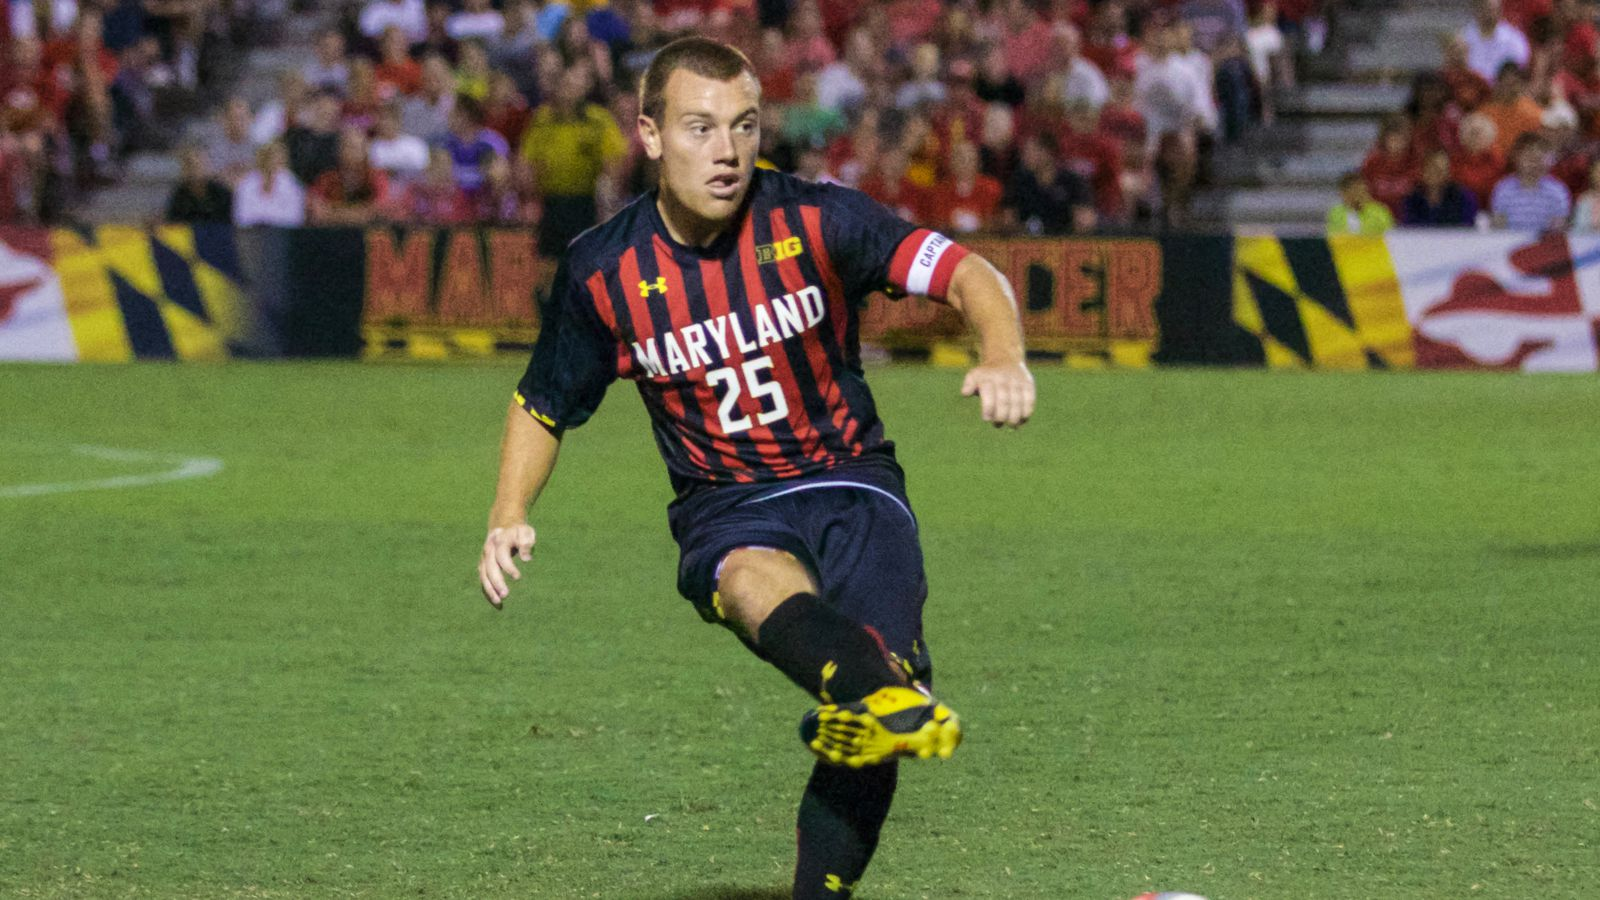 Maryland men's soccer vs. Rutgers final score, with 3 ...